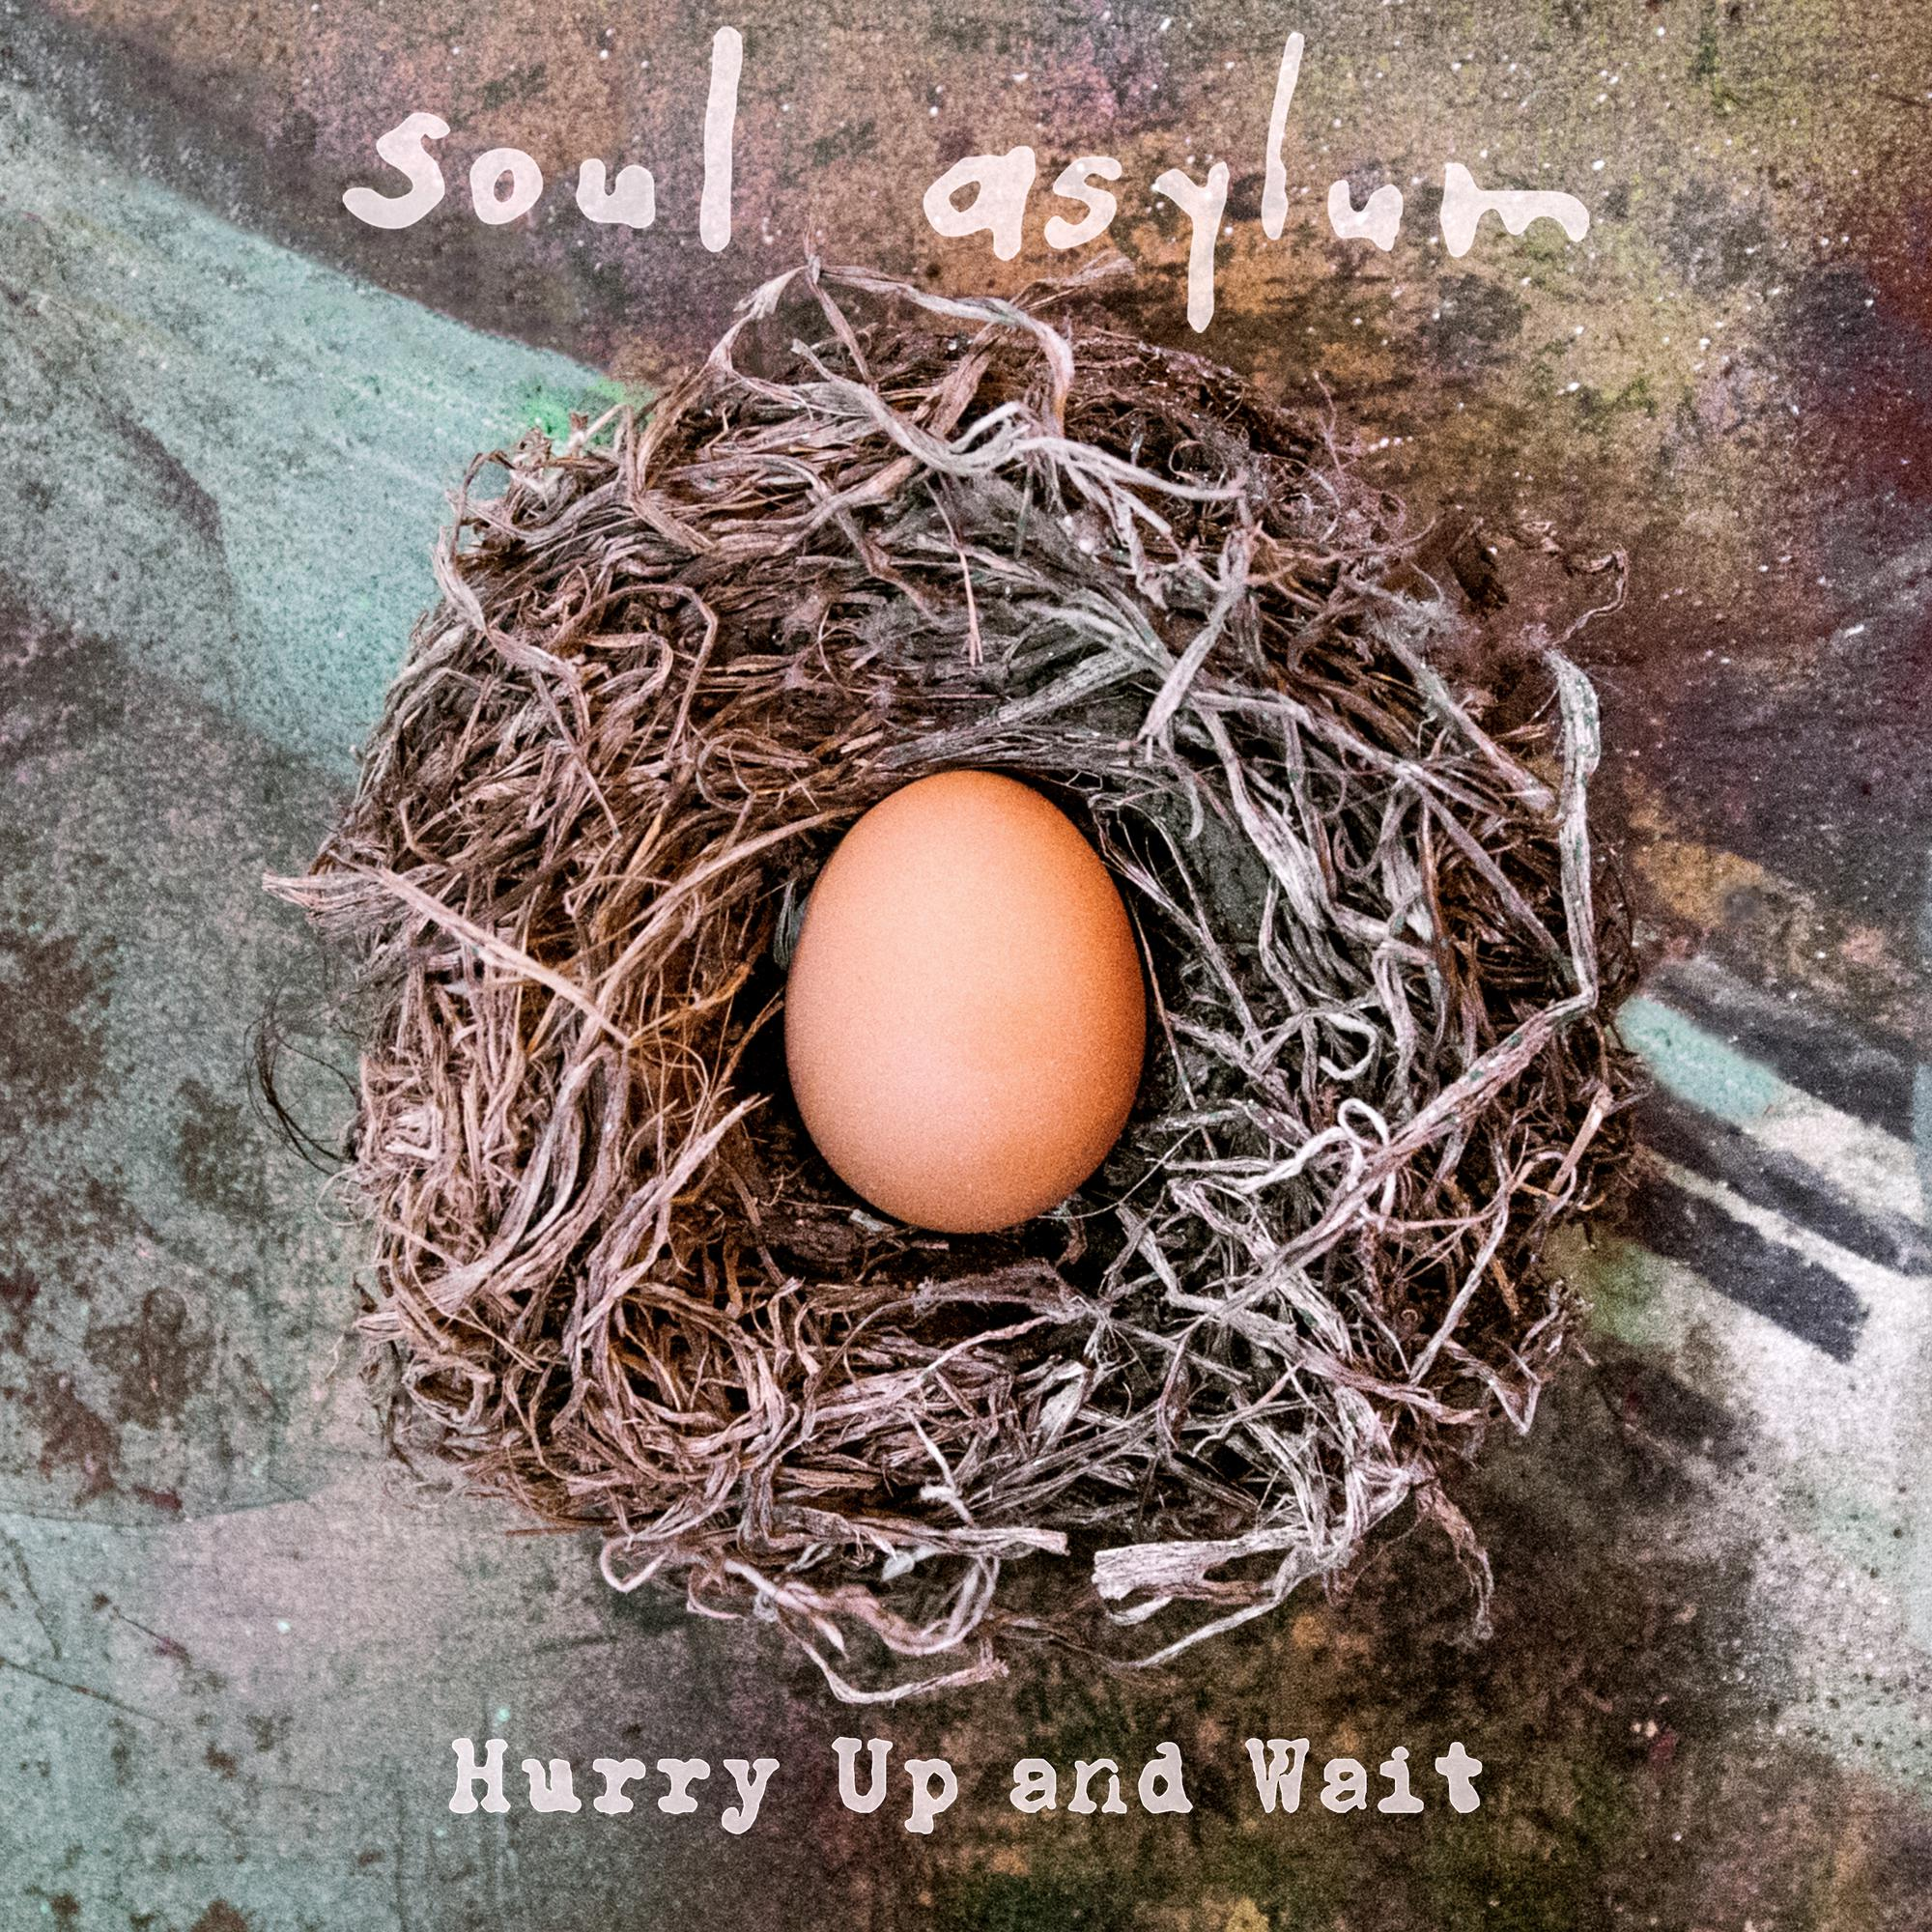 Soul Asylum - Hurry Up And Wait (Deluxe Version) [RSD Drops Oct 2020]